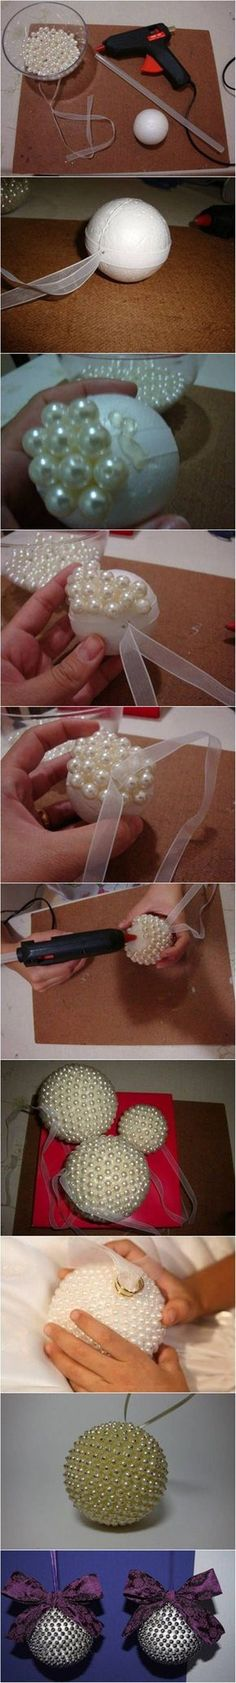 Creative Ideas - DIY Pearl Beads Ball Christmas Ornaments